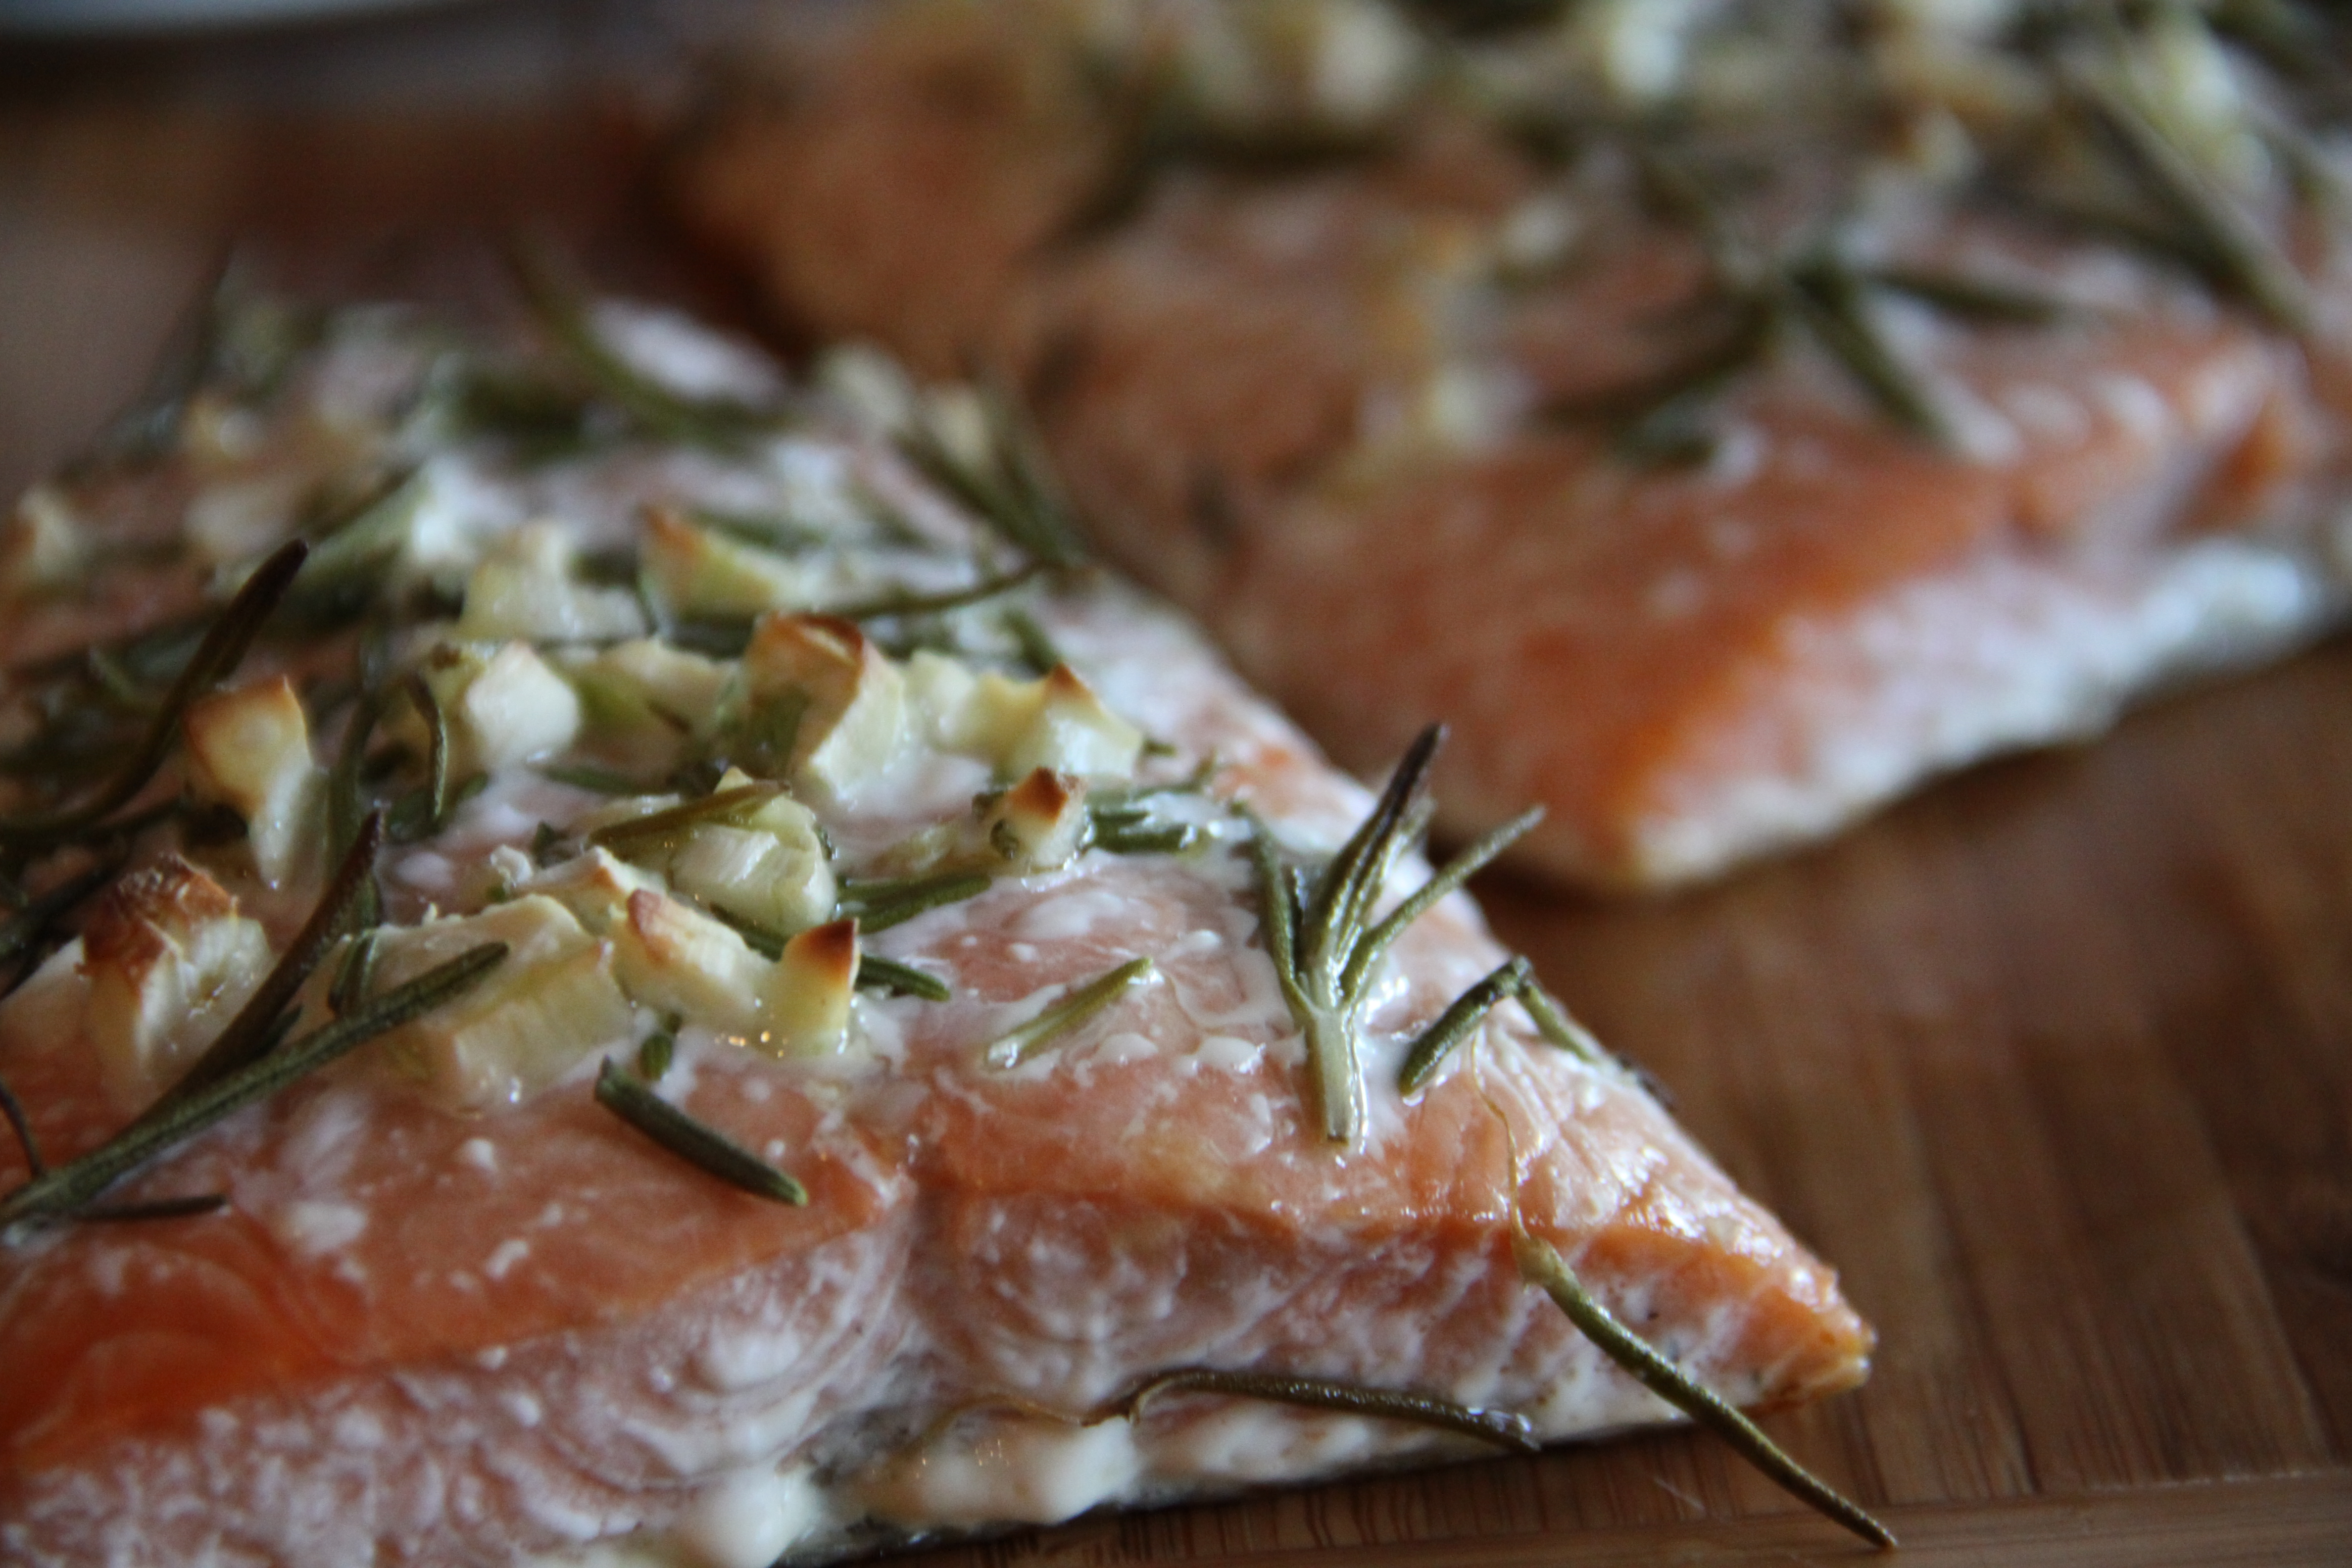 Baked Salmon with Rosemary, Garlic and Olive Oil